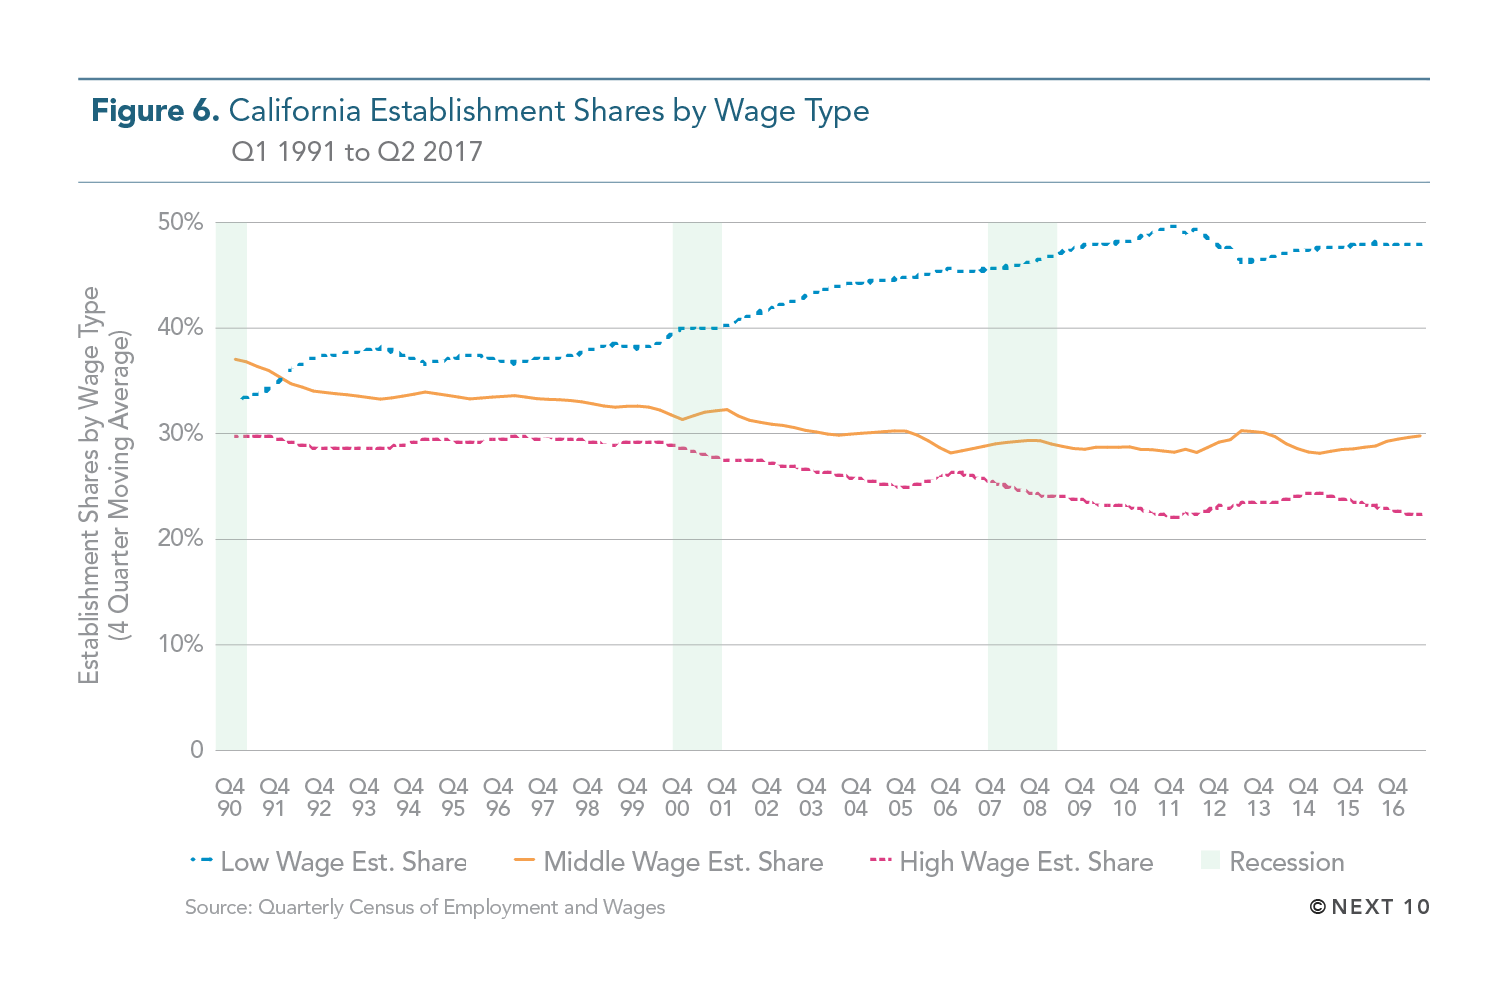 California Establishment Shares by Wage Type